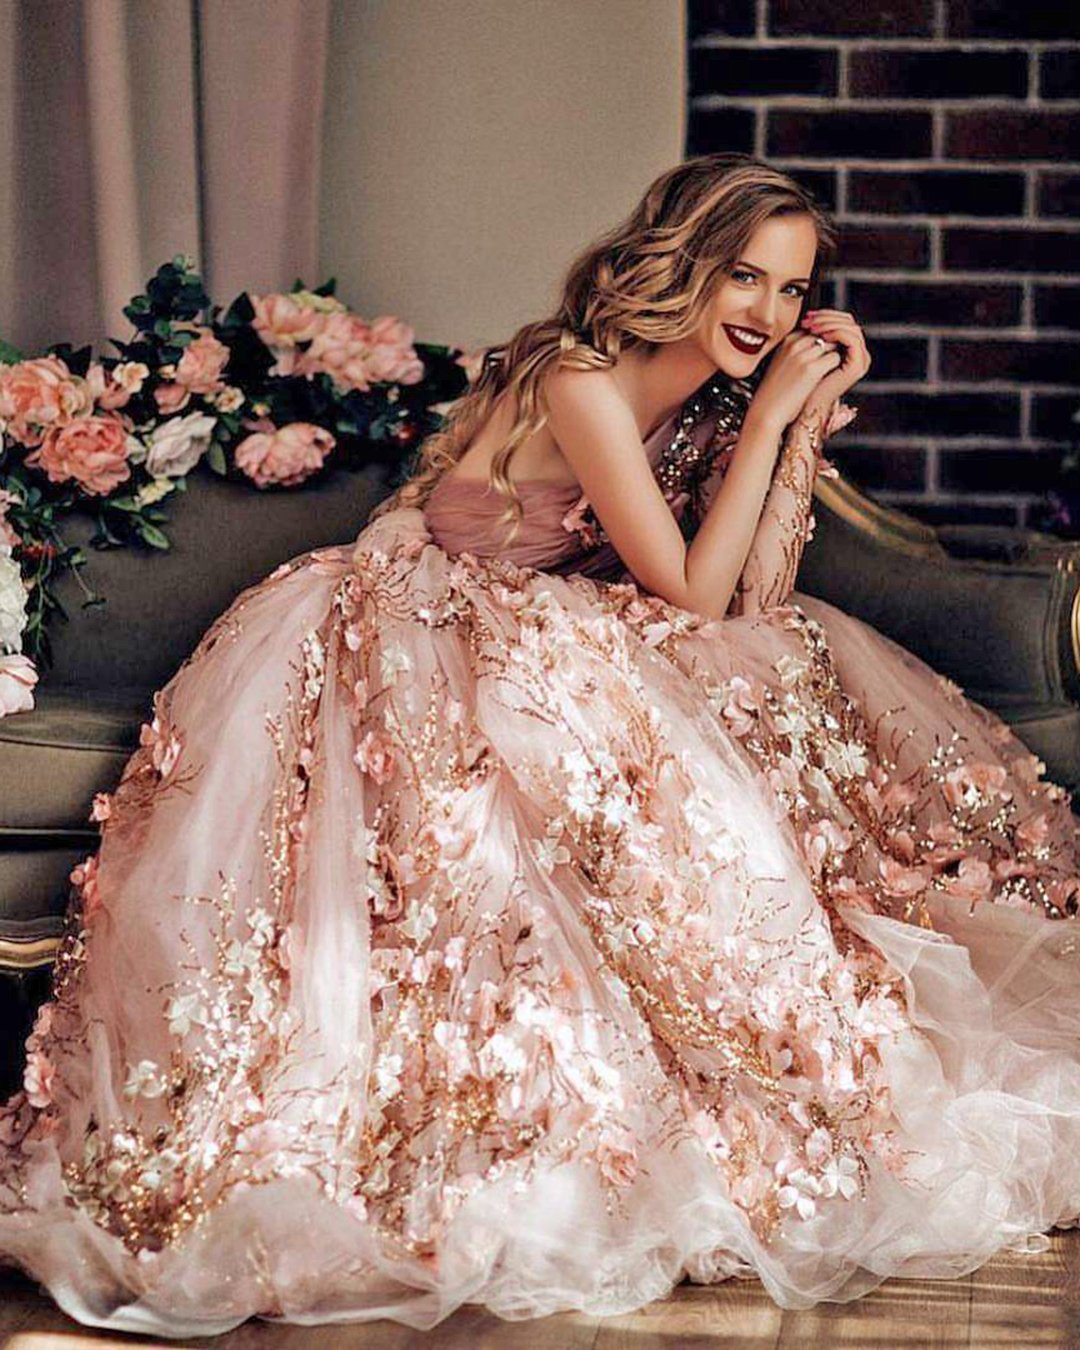 nude wedding photos dress floral 3d malyarova